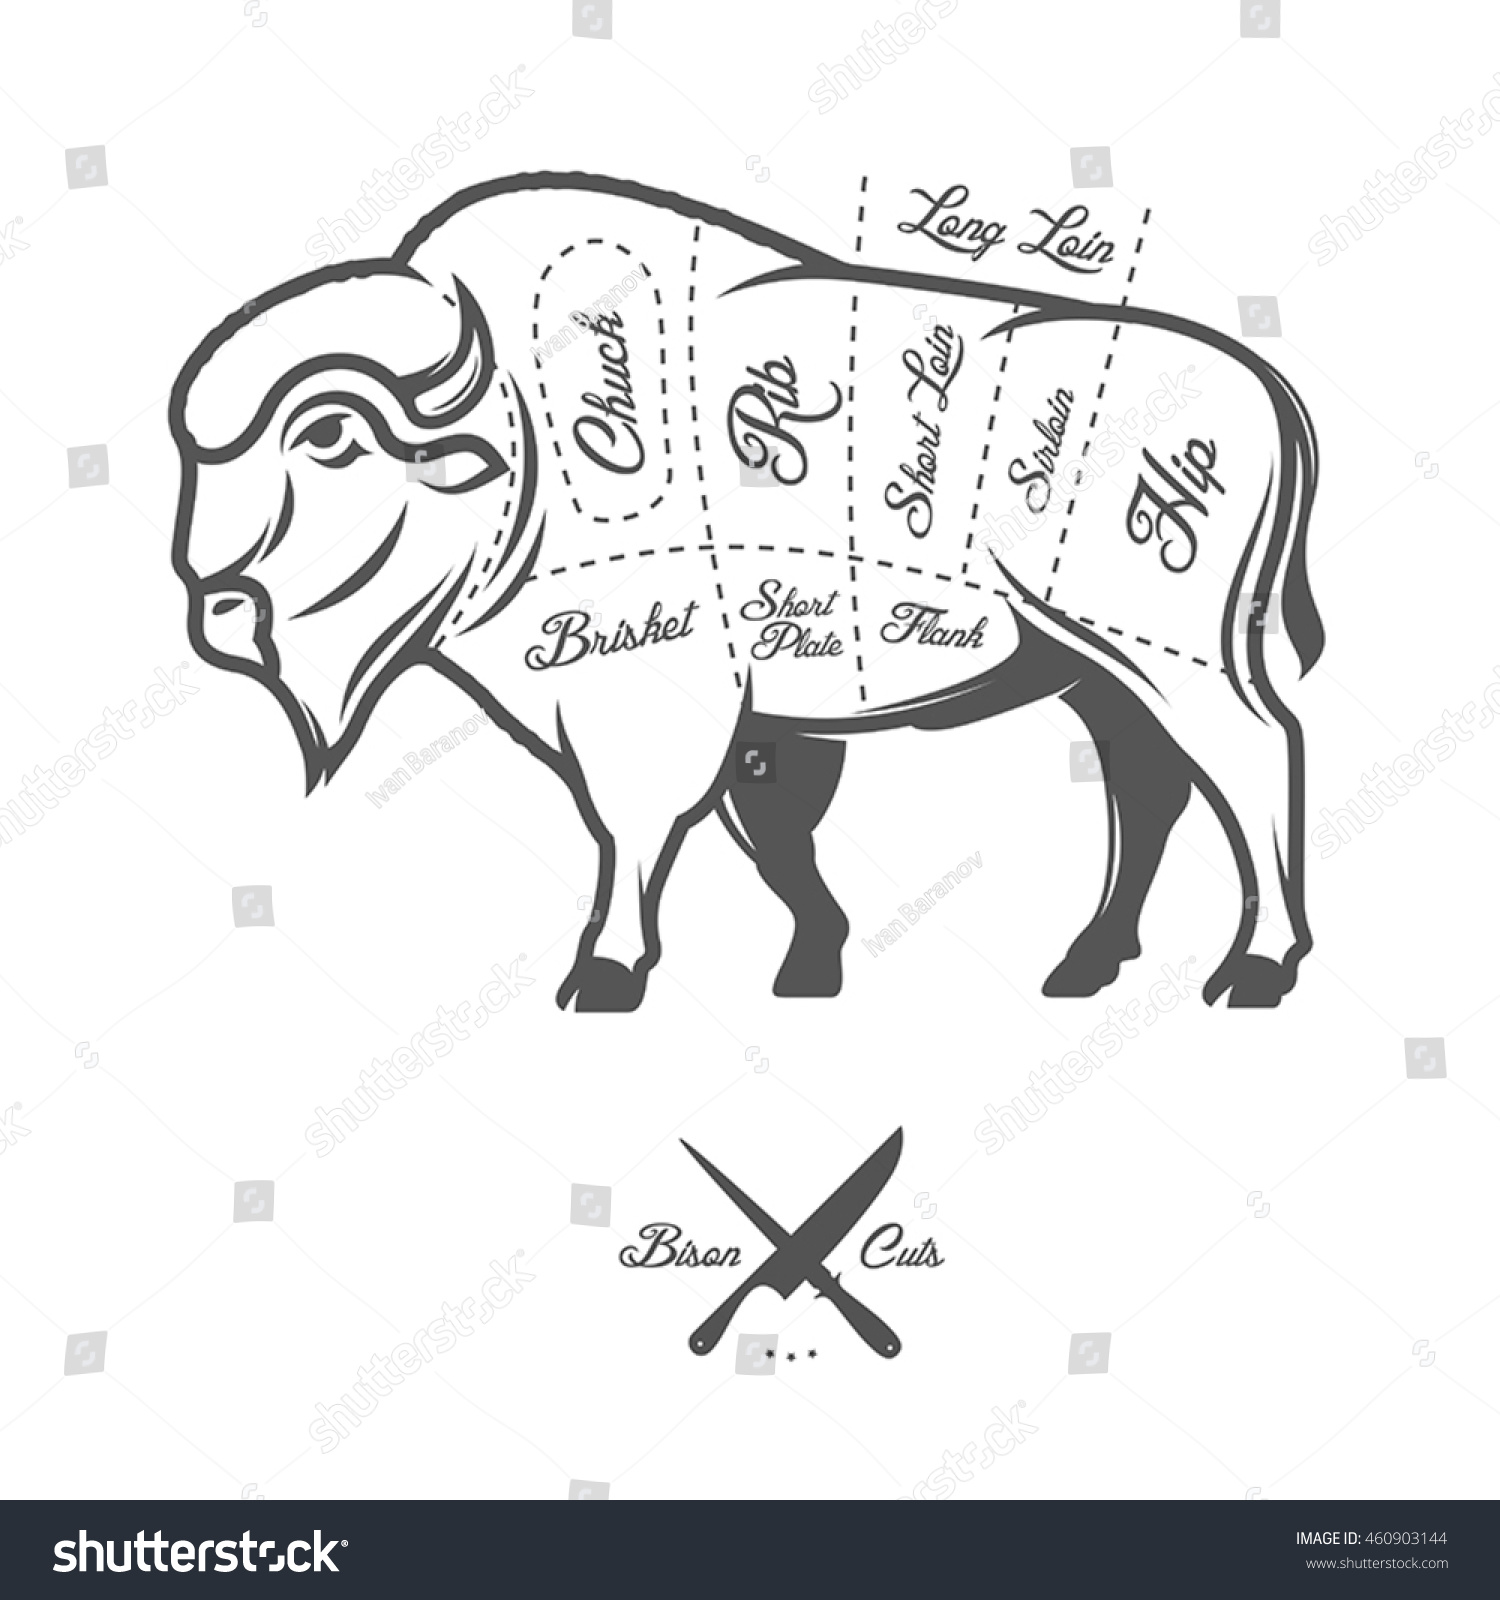 vintage butcher cuts bison buffalo scheme stock vector royalty free CT Diagram vintage butcher cuts of bison buffalo scheme diagram